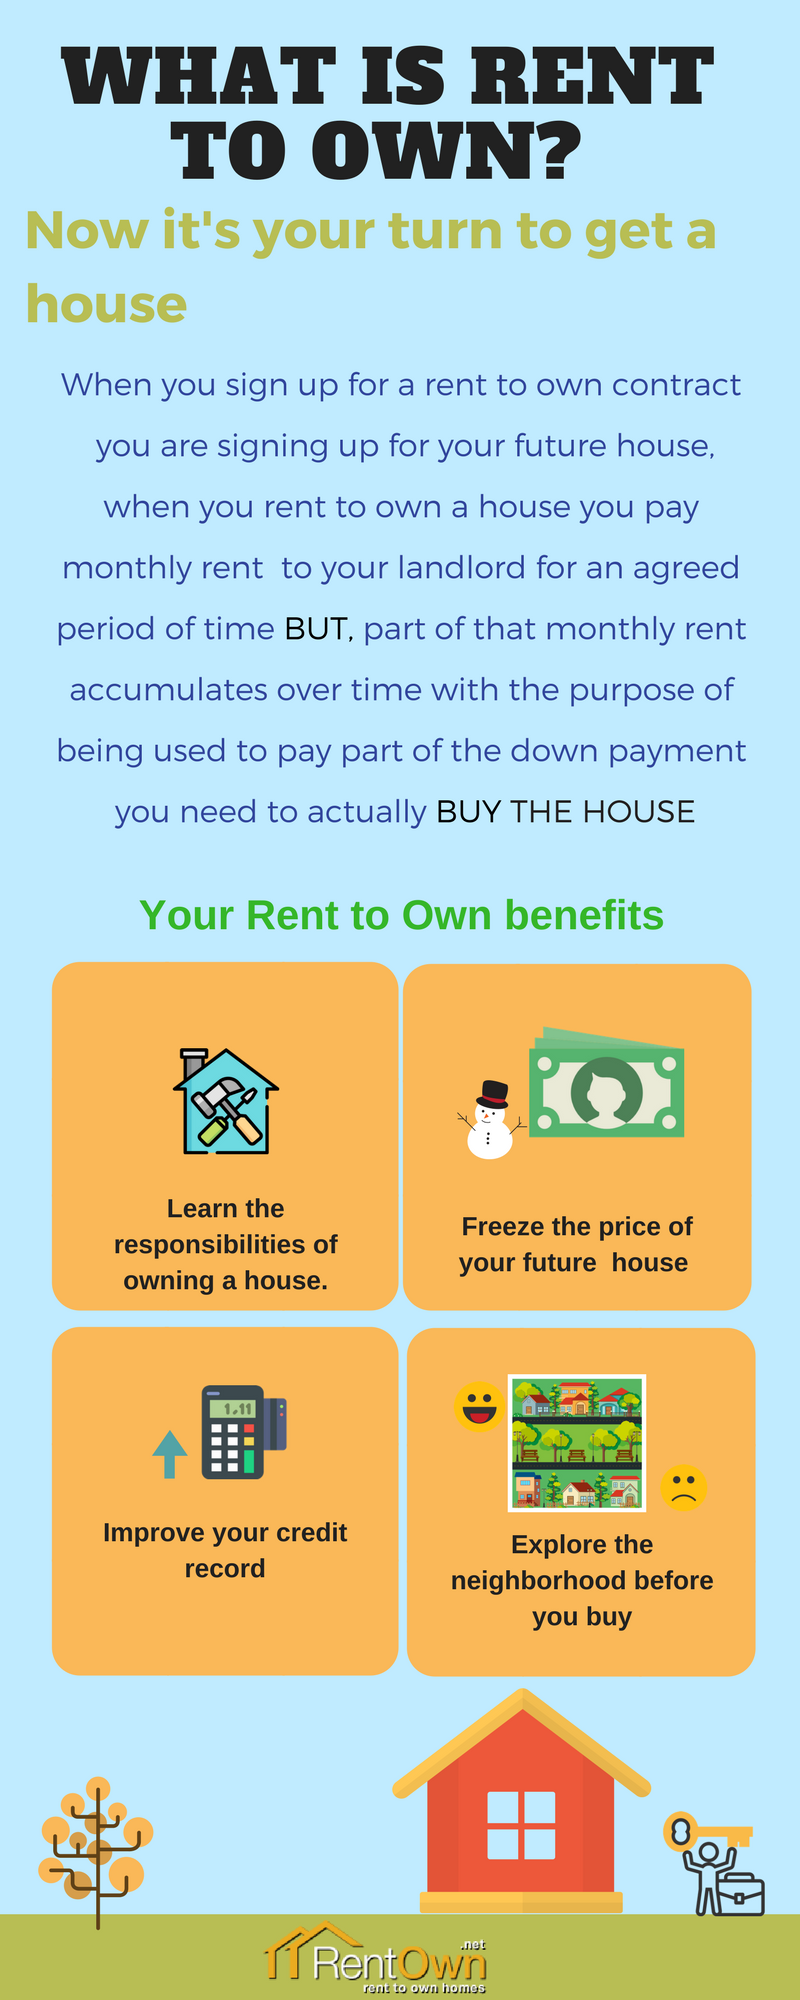 The Easy Steps To Rent To Own Your Next Home WwwRentownNet